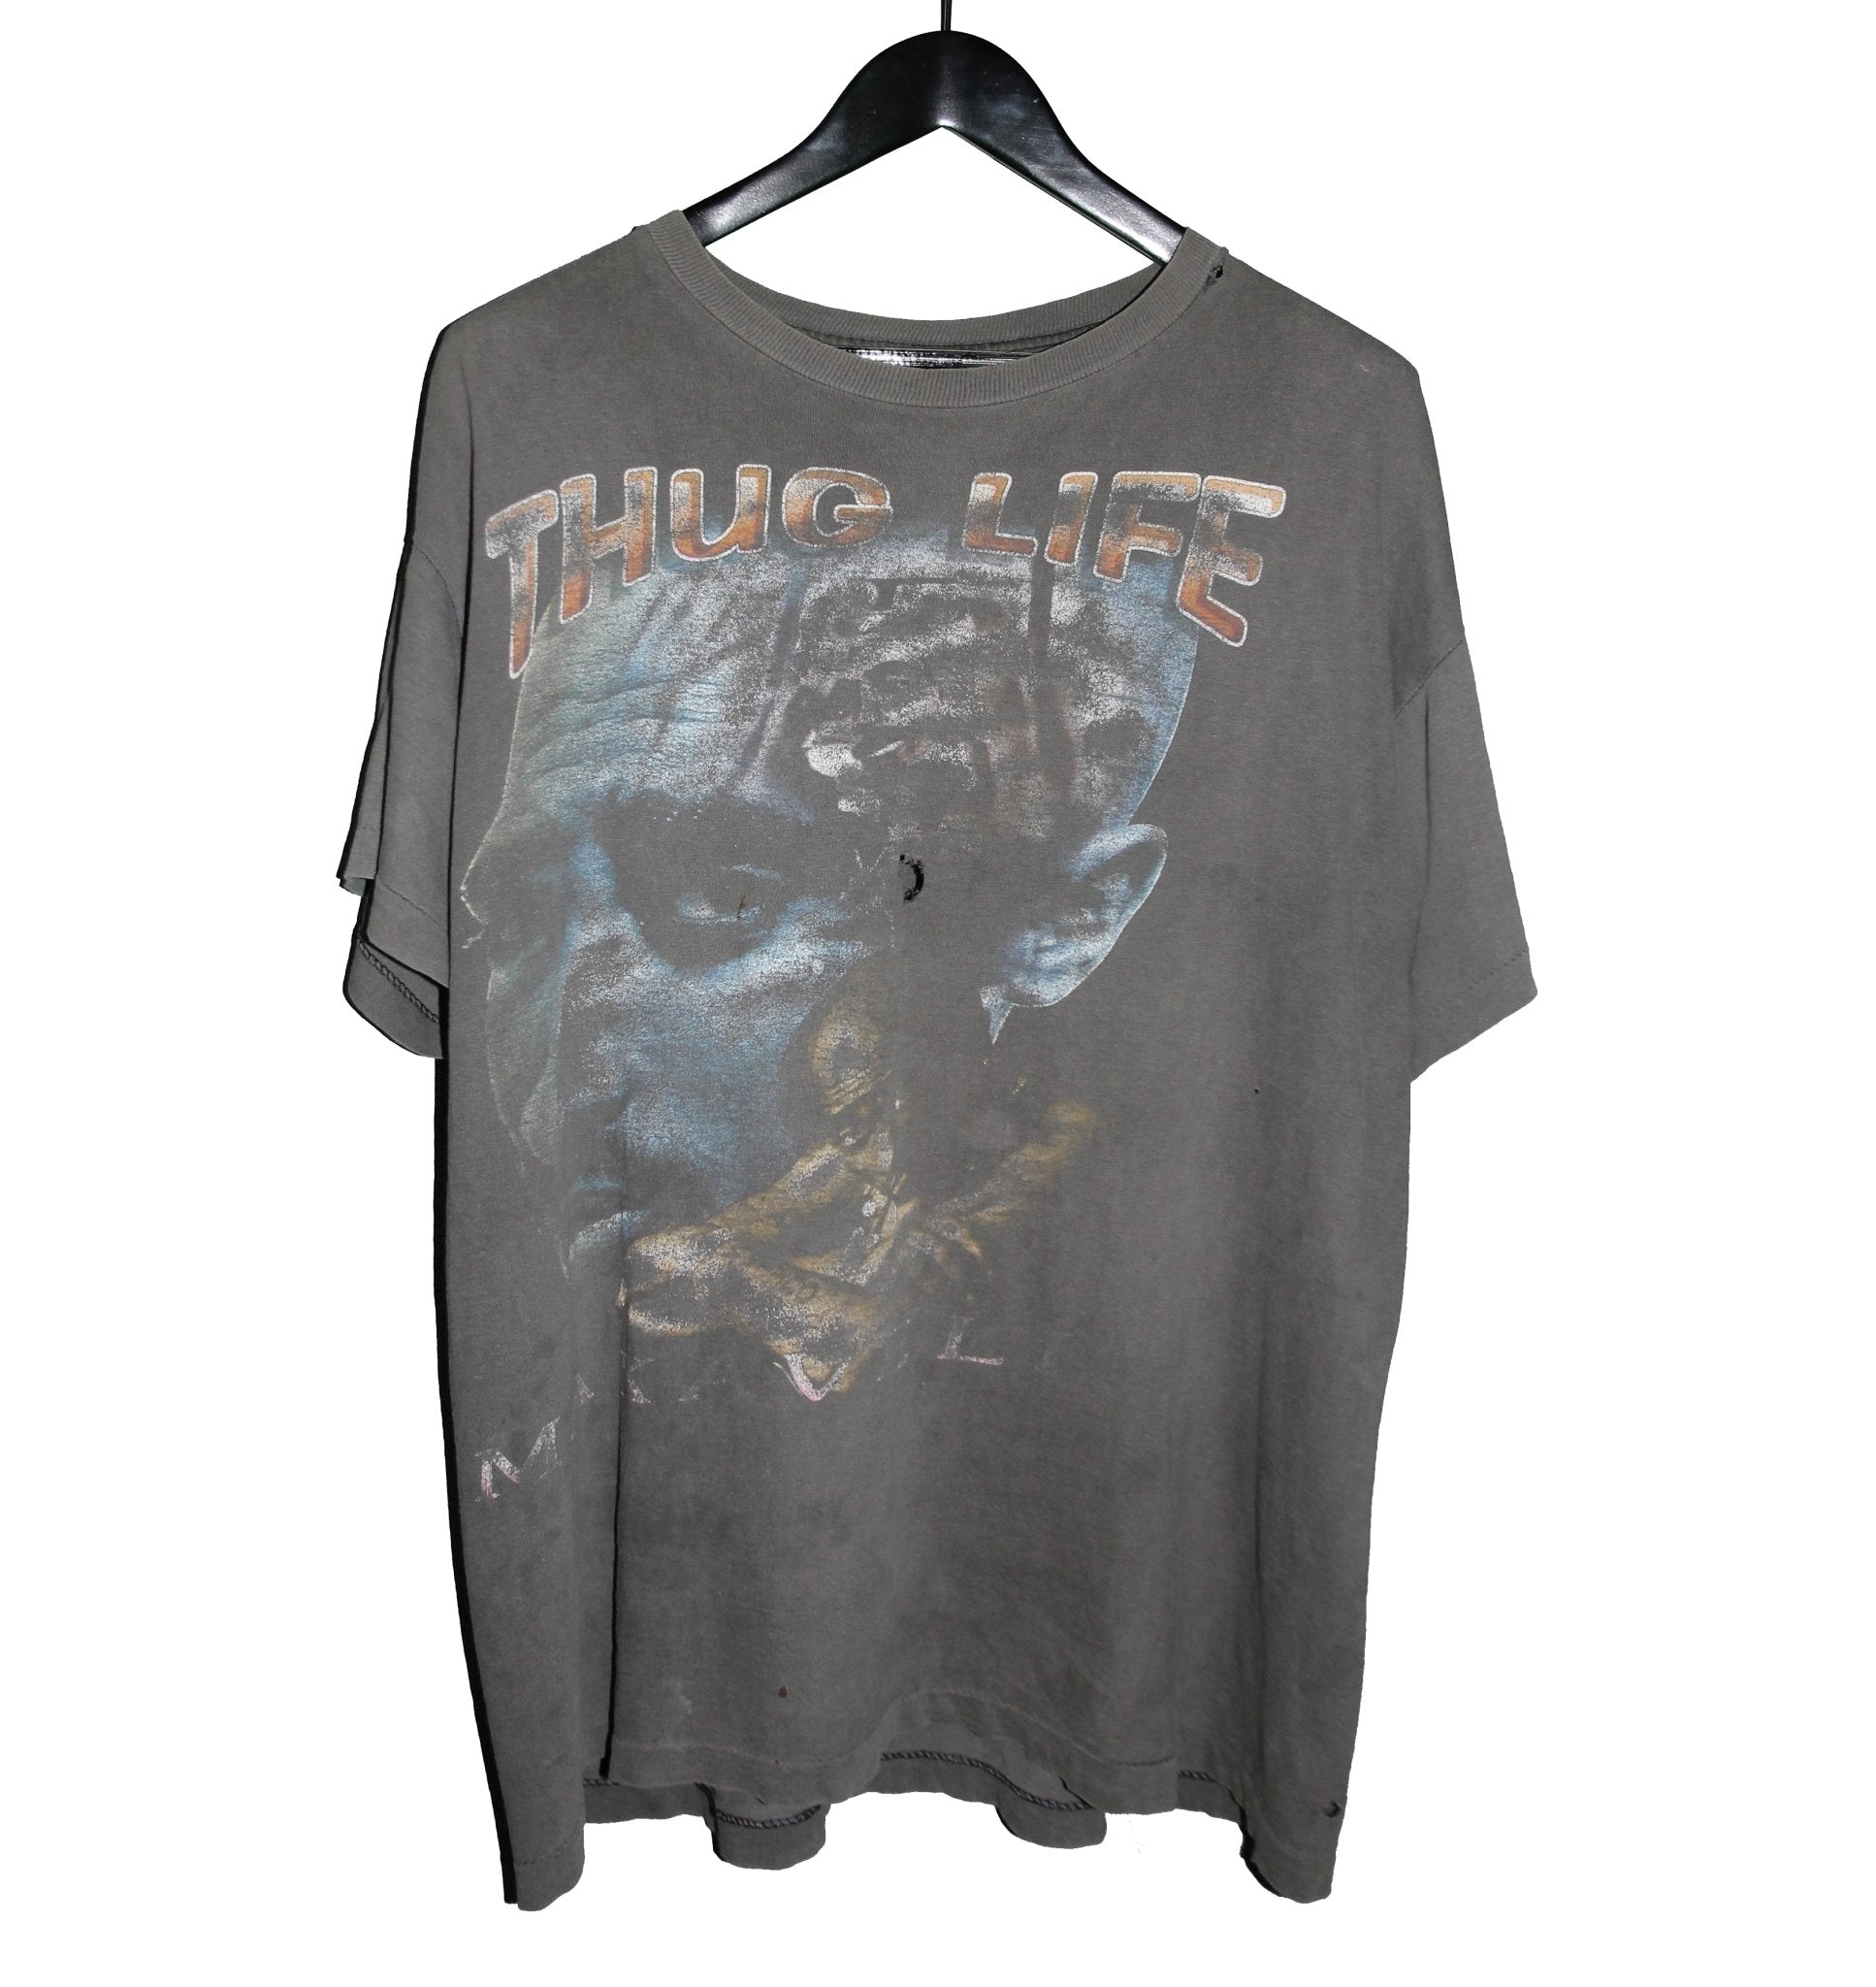 2PAC 1997 Makaveli Memorial Rap Tee - Faded AU